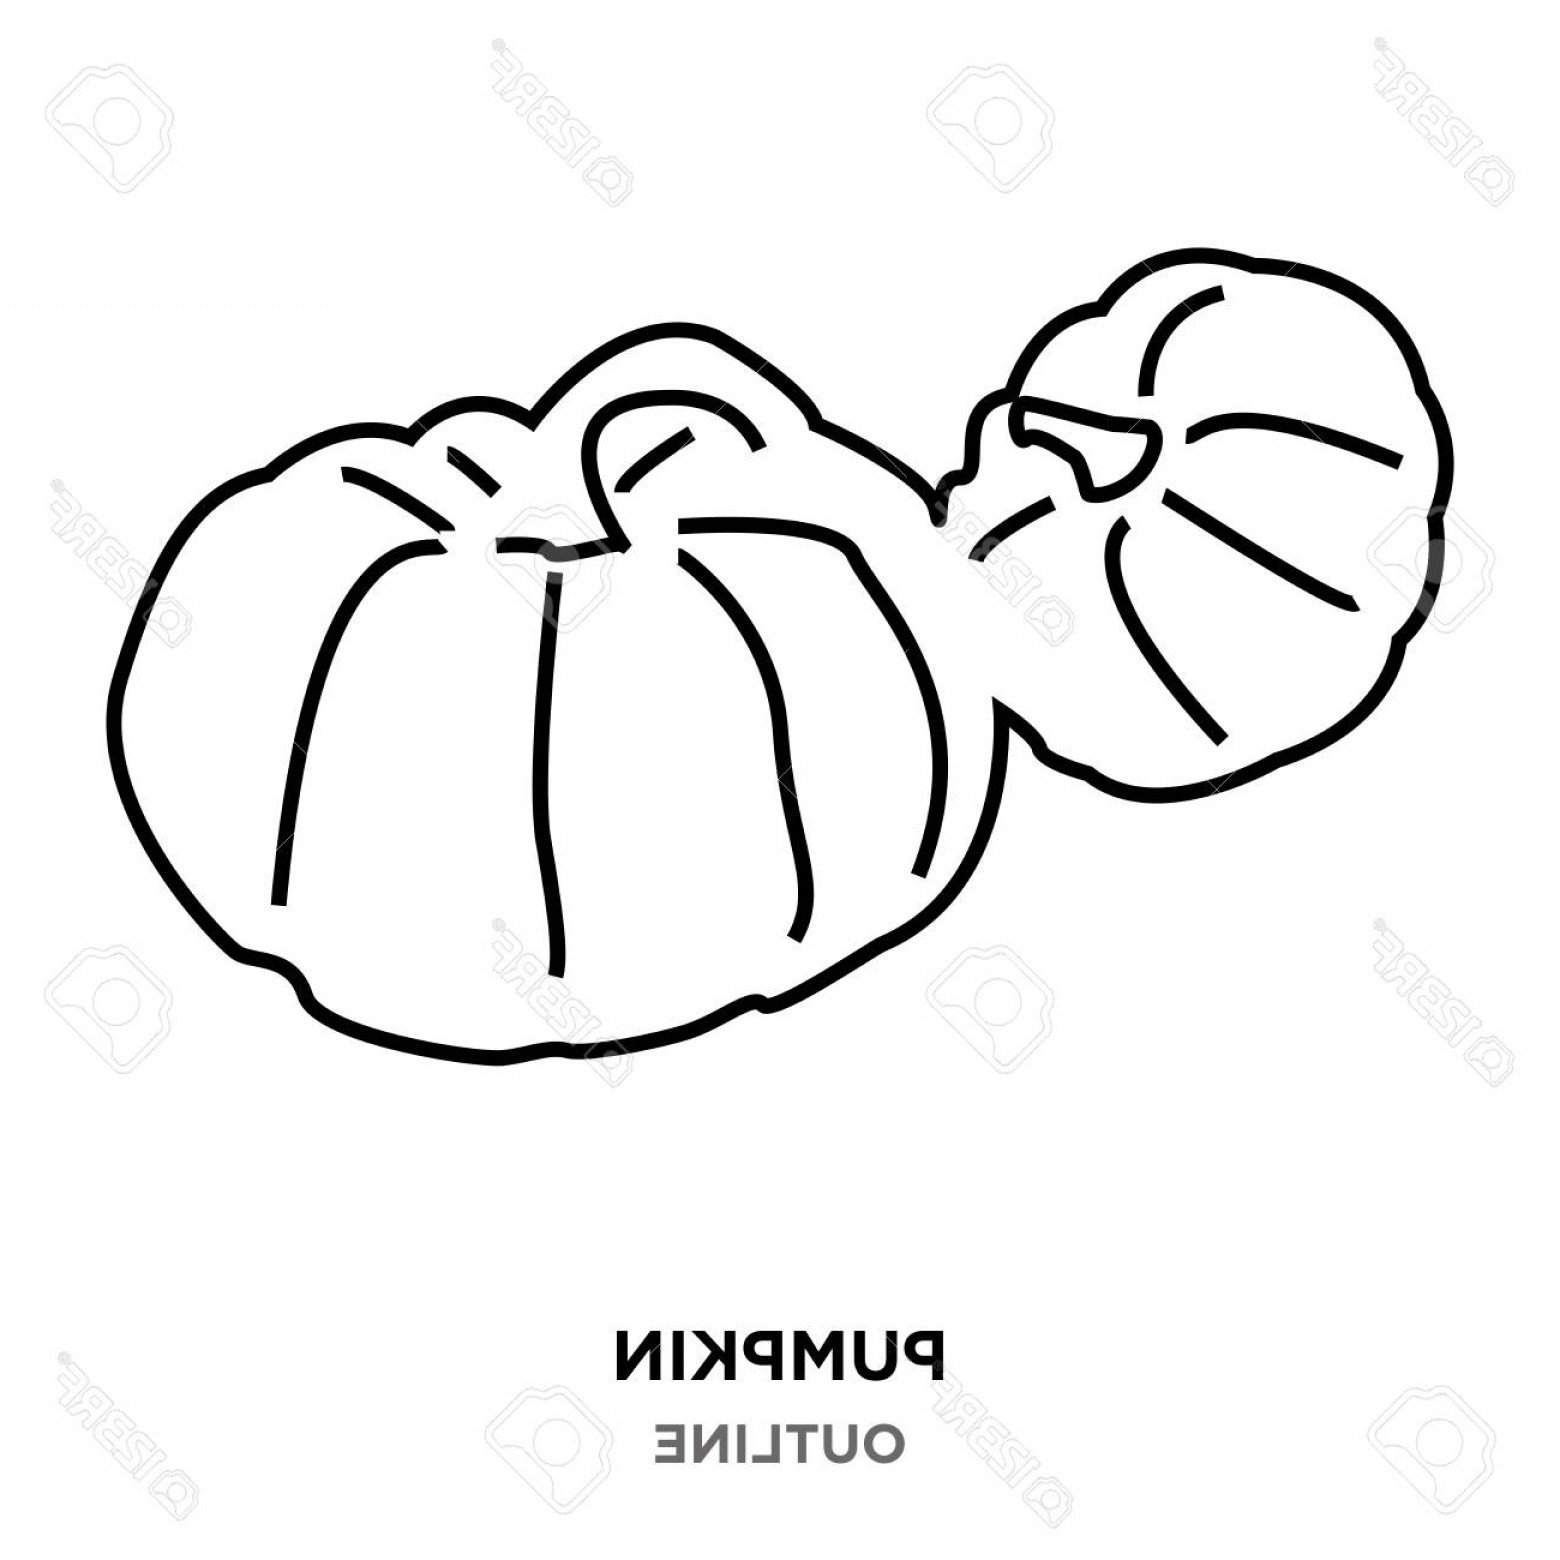 Pumpkin Outline Vector Art: Photostock Vector A Pumpkin Outline Images On White Background Small And Big Ones Together